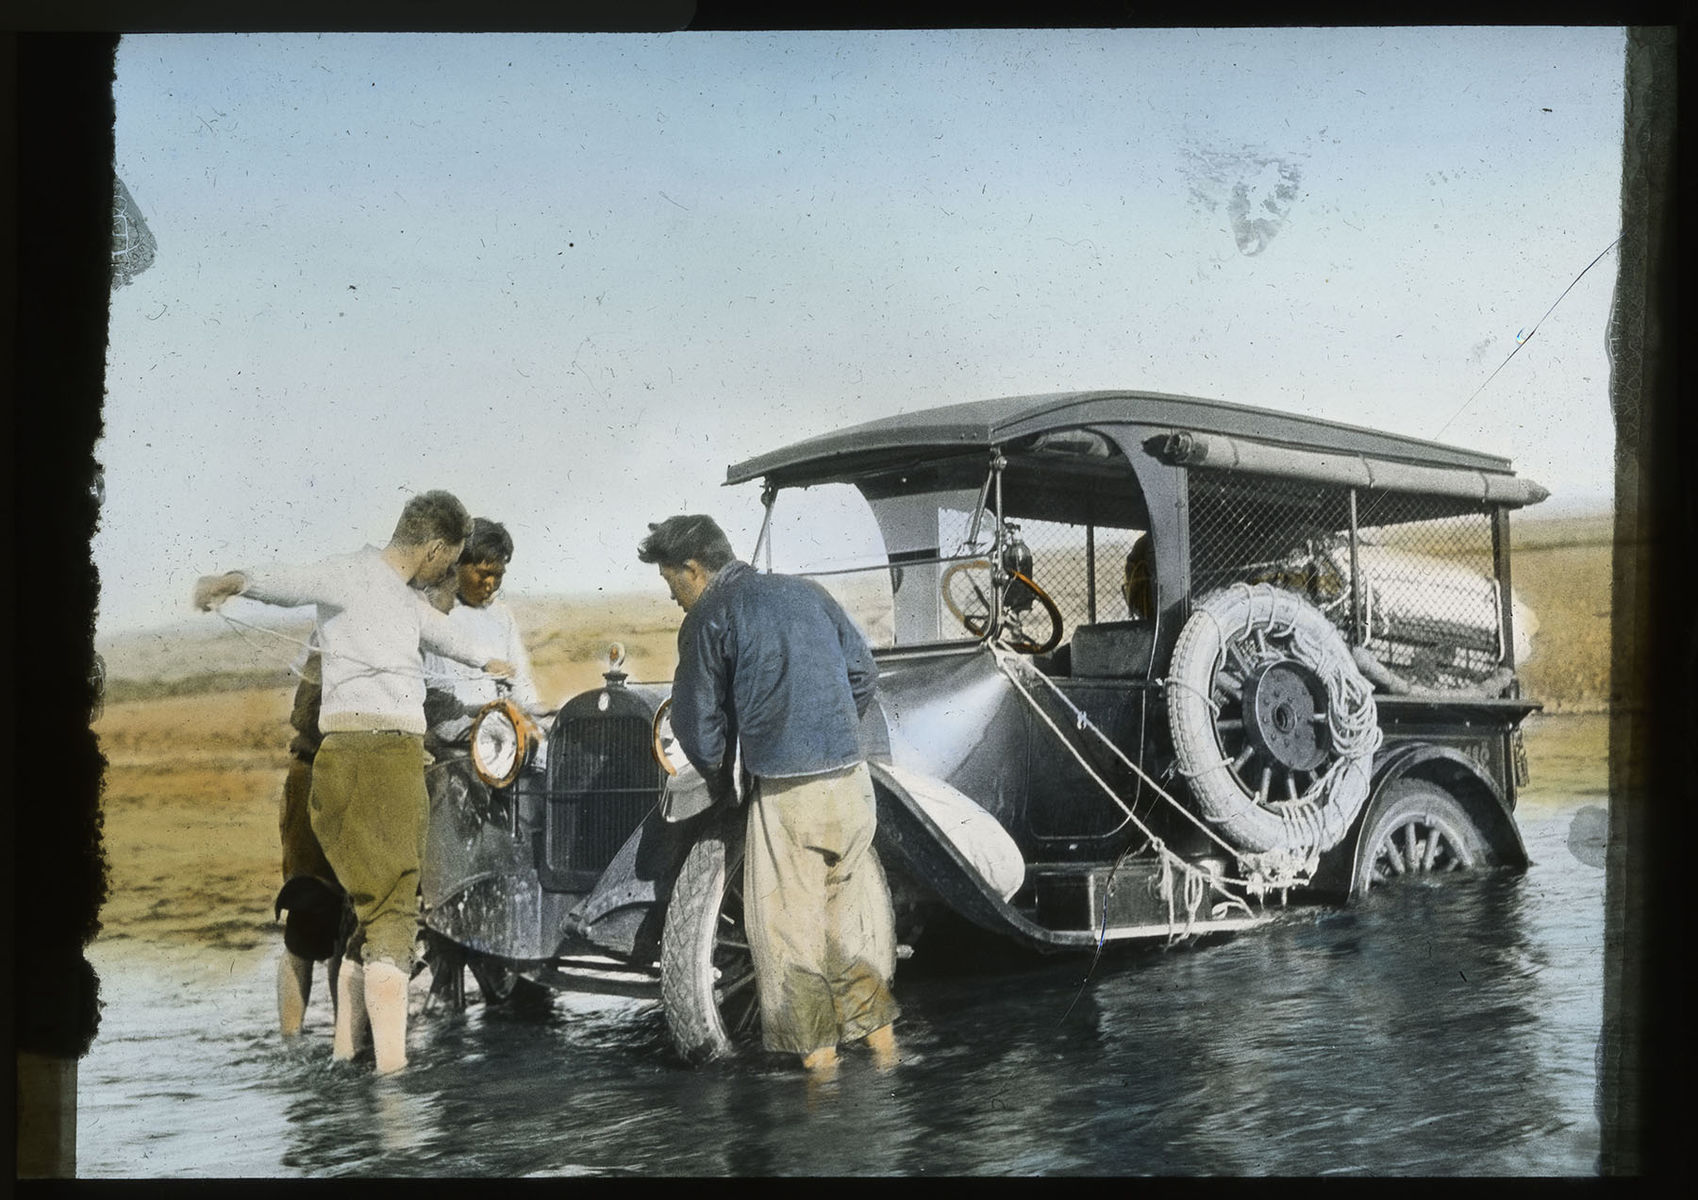 Expedition members gather around a car that has driven into low water.